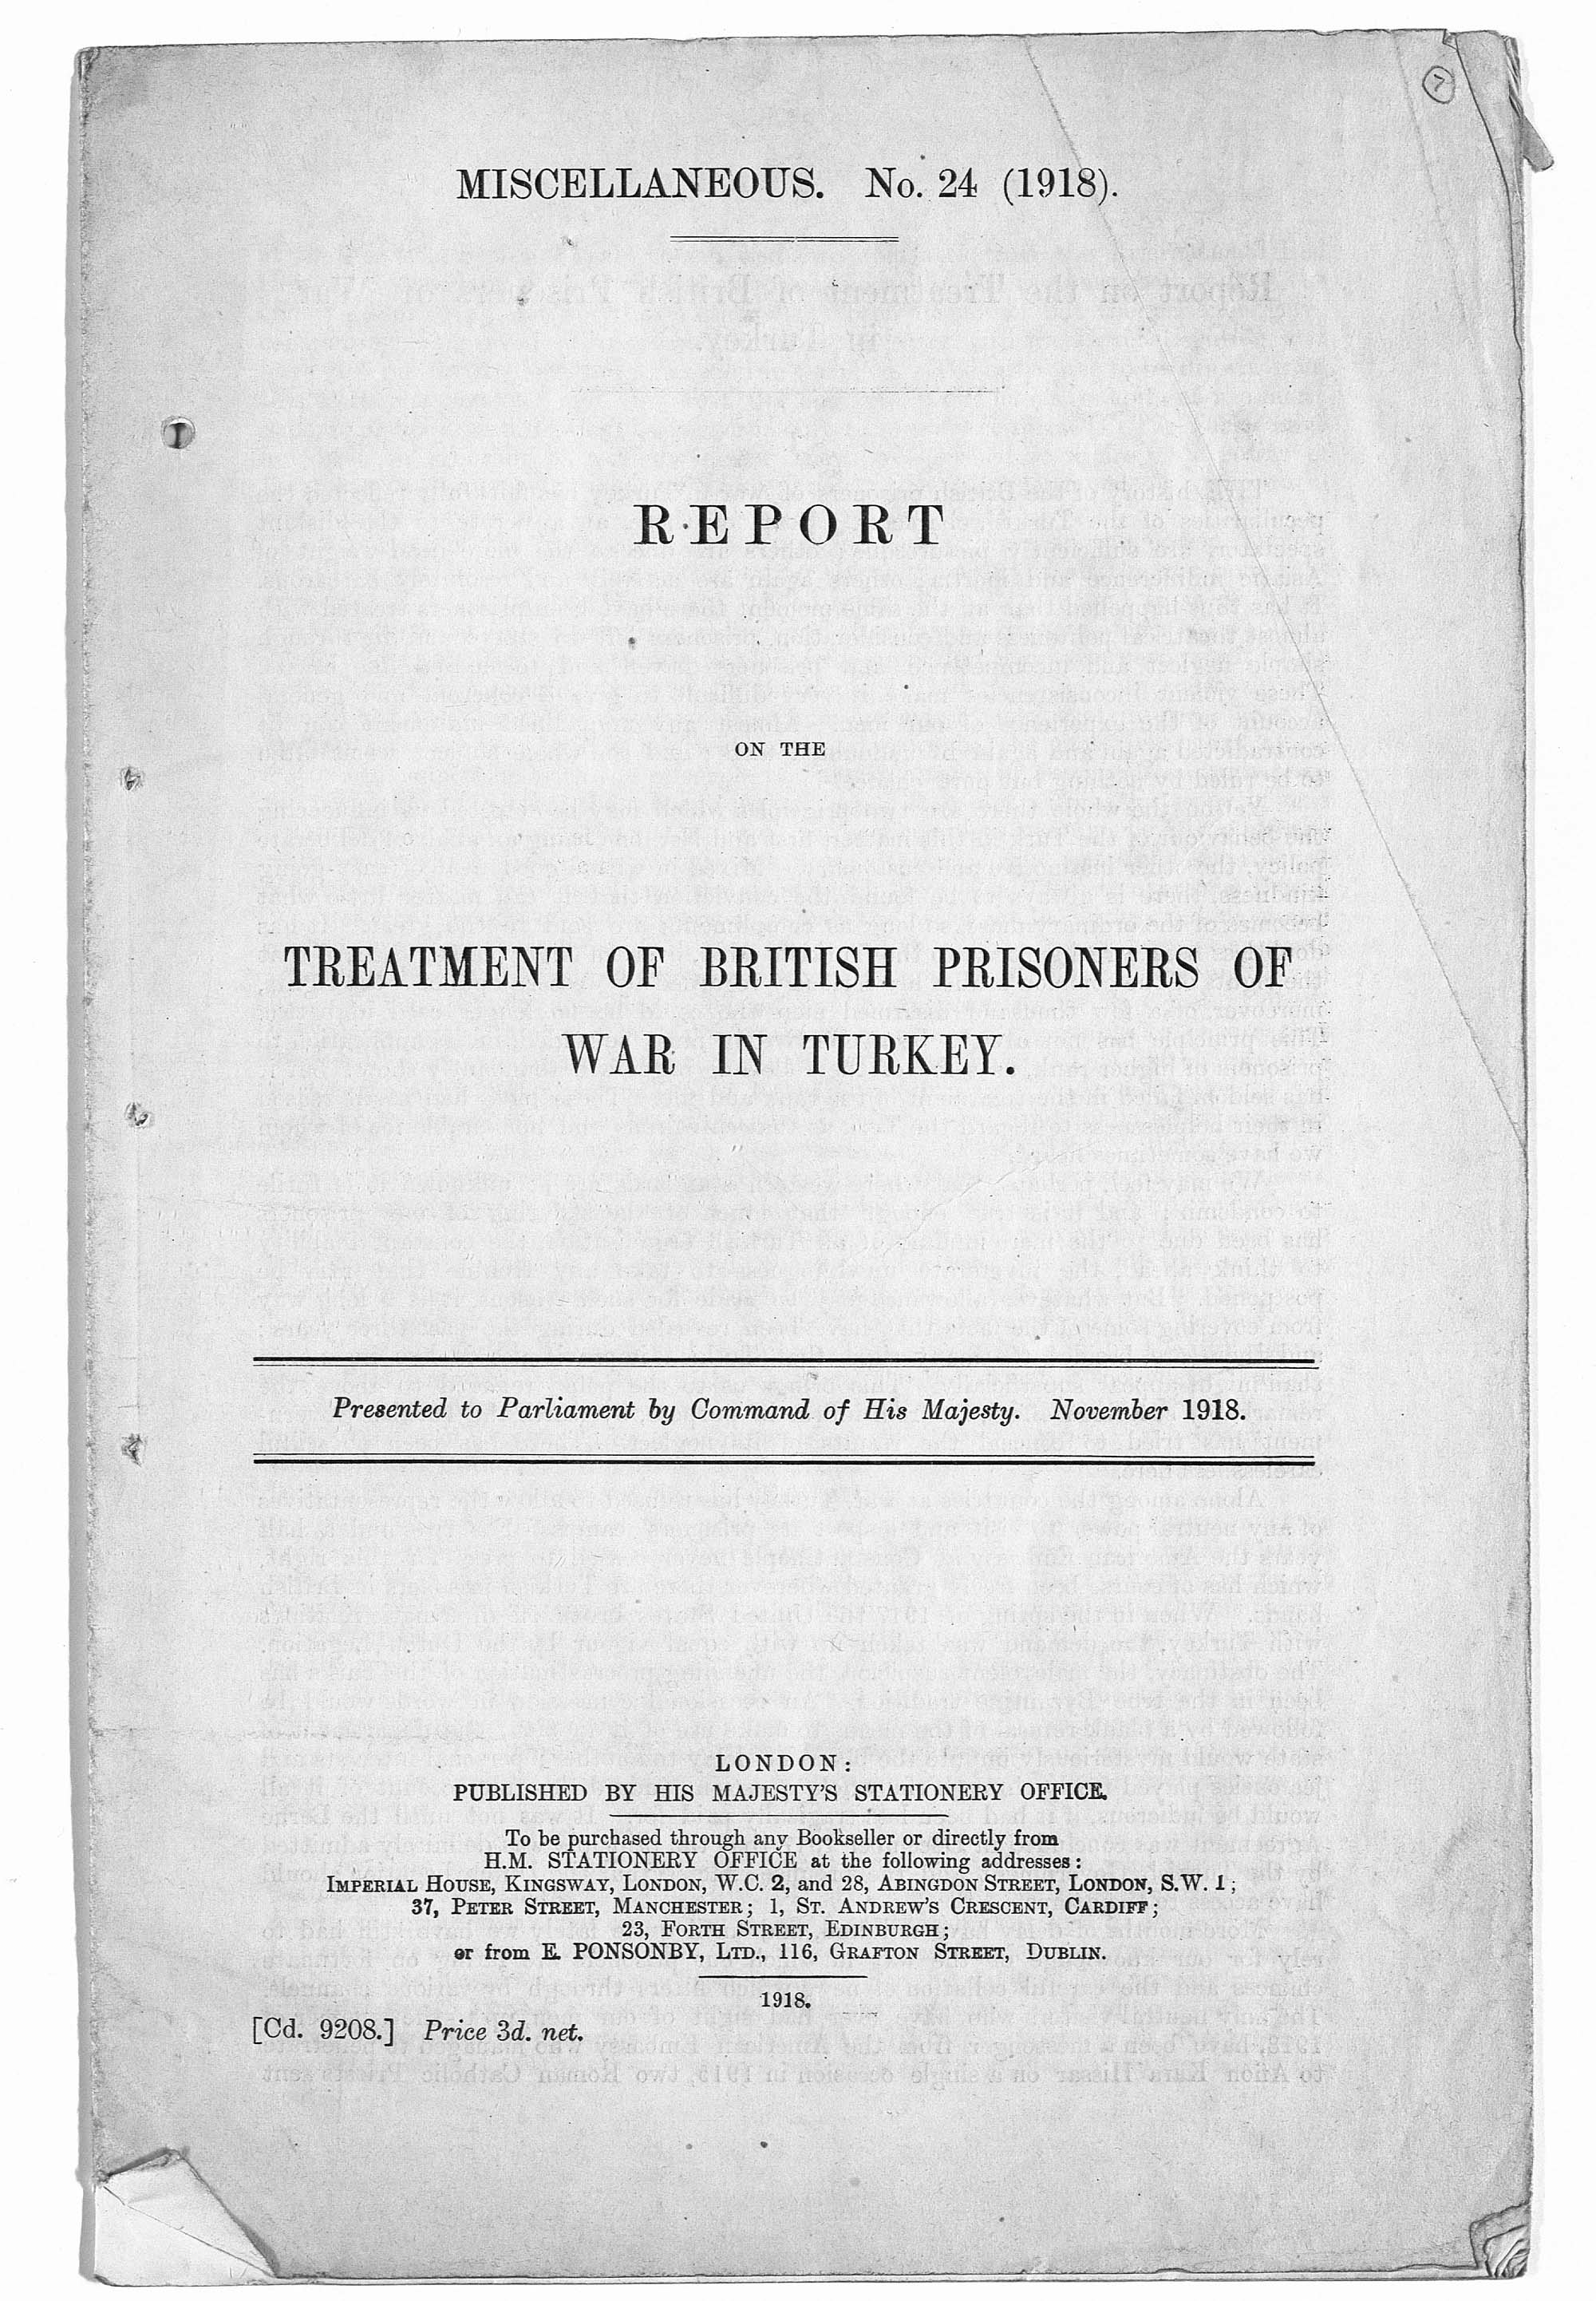 According to this report, 16,583 British and Indian officers and men were taken prisoner by Turkey during the war. Their welfare, and the conditions in which they were kept, were of great concern to the British and Indian Governments.